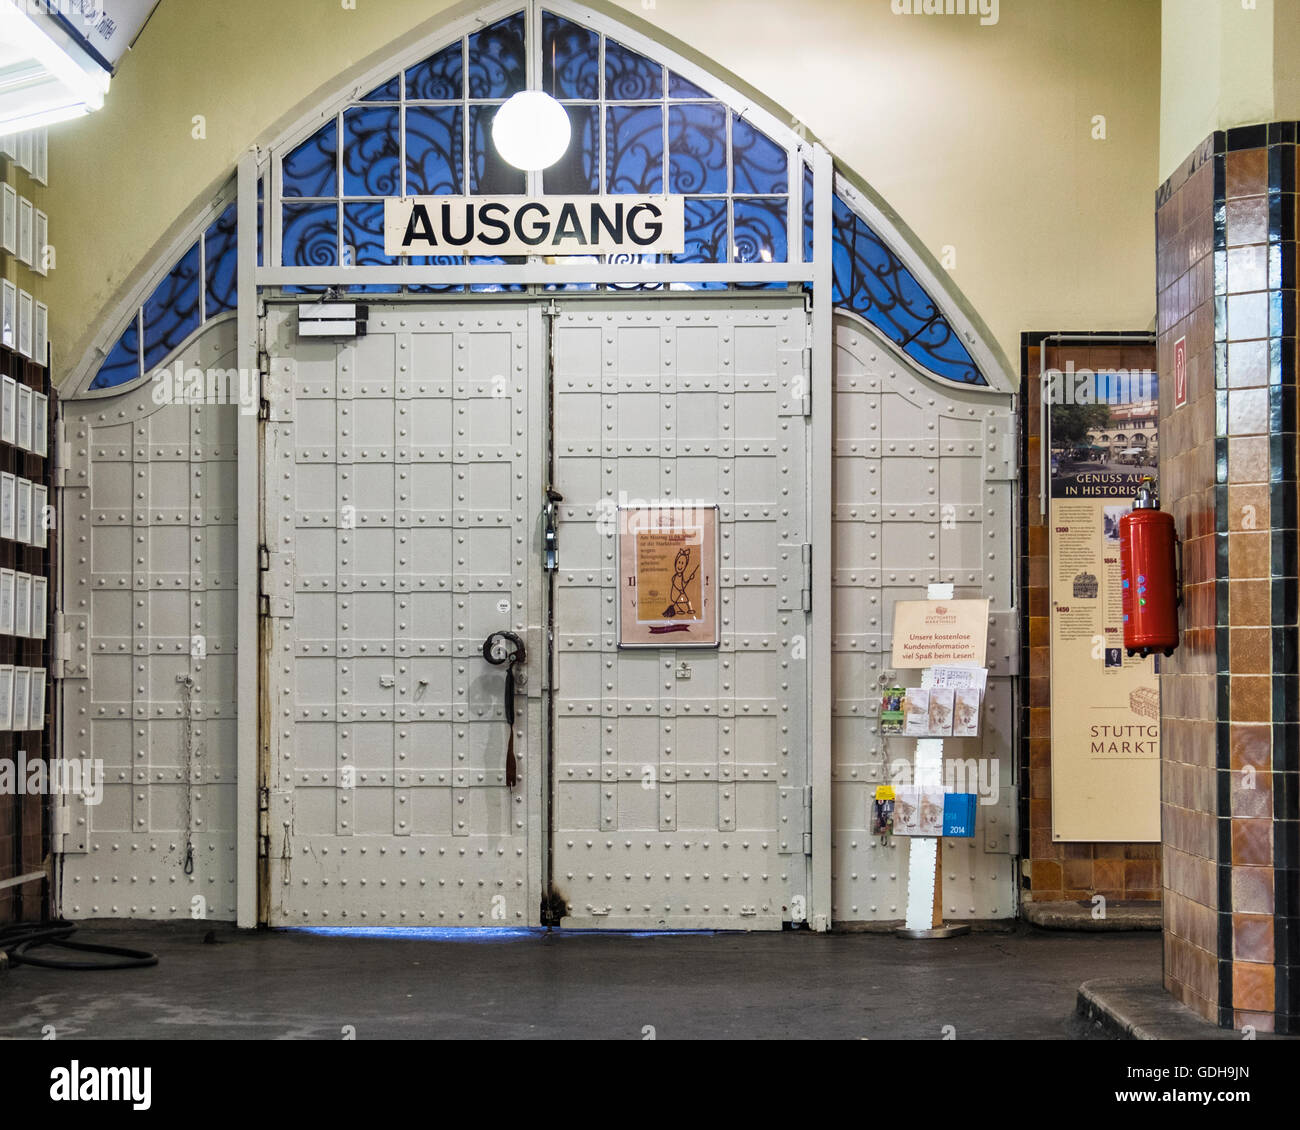 Stuttgart old market, markthalle building interior with arched exit door marked ausgang - Stock Image